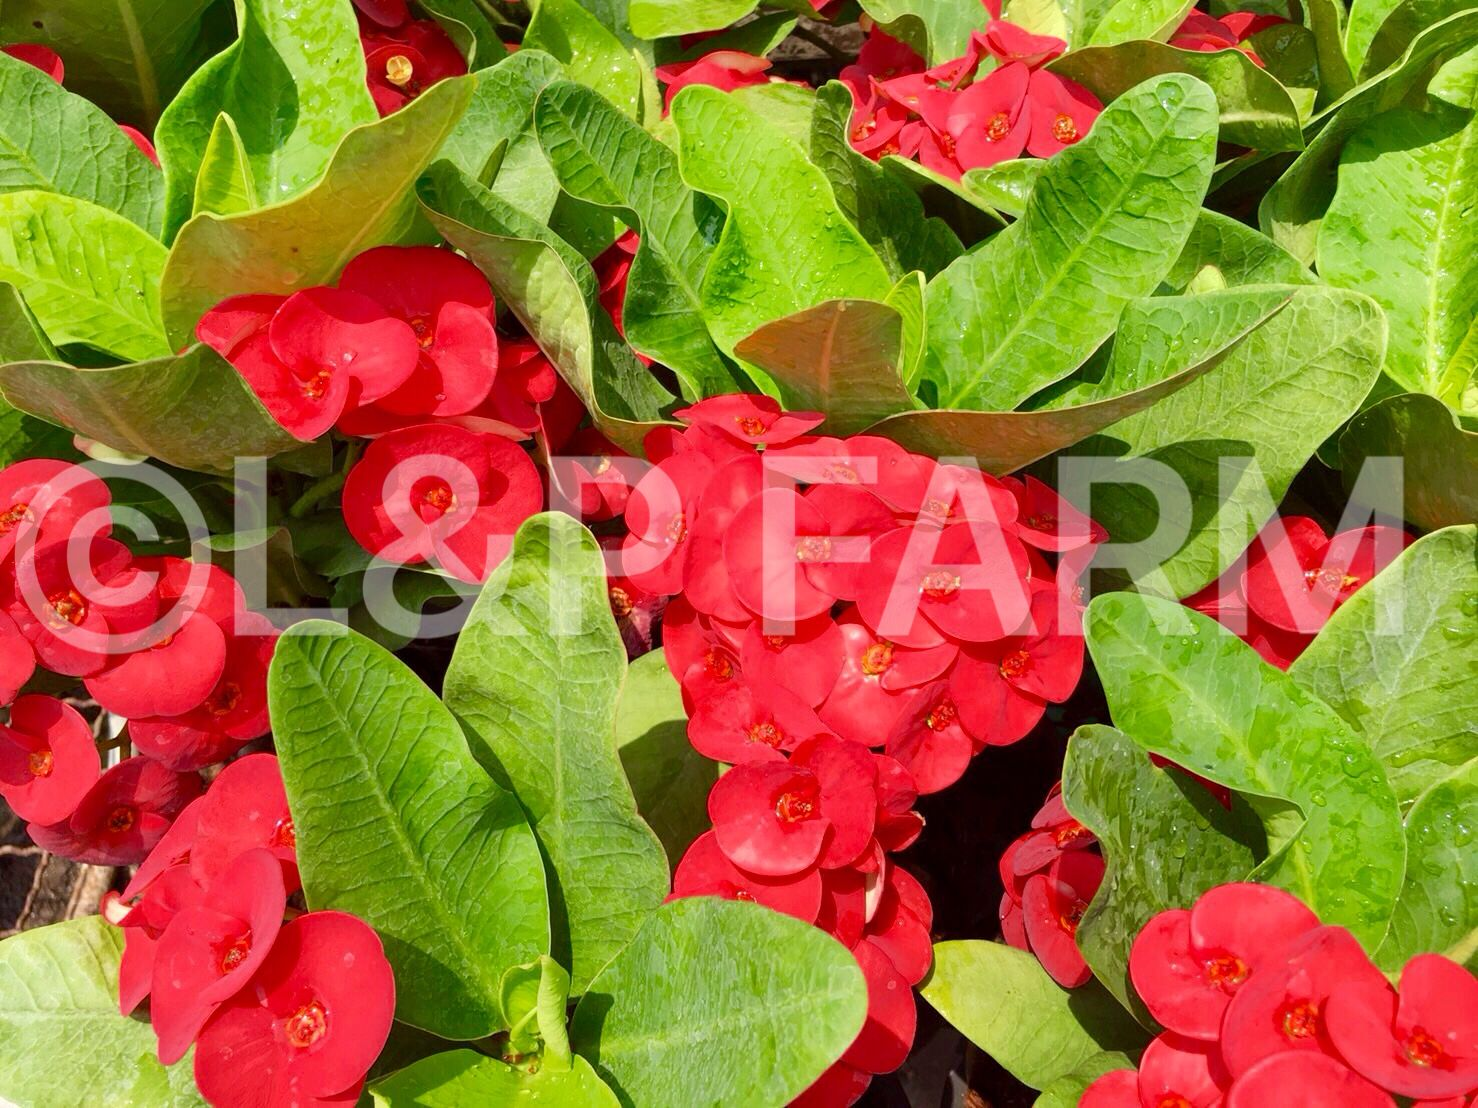 Euphorbia milii from lp farm is ready to sell in our store for euphorbia milii from lp farm is ready to sell in our store for izmirmasajfo